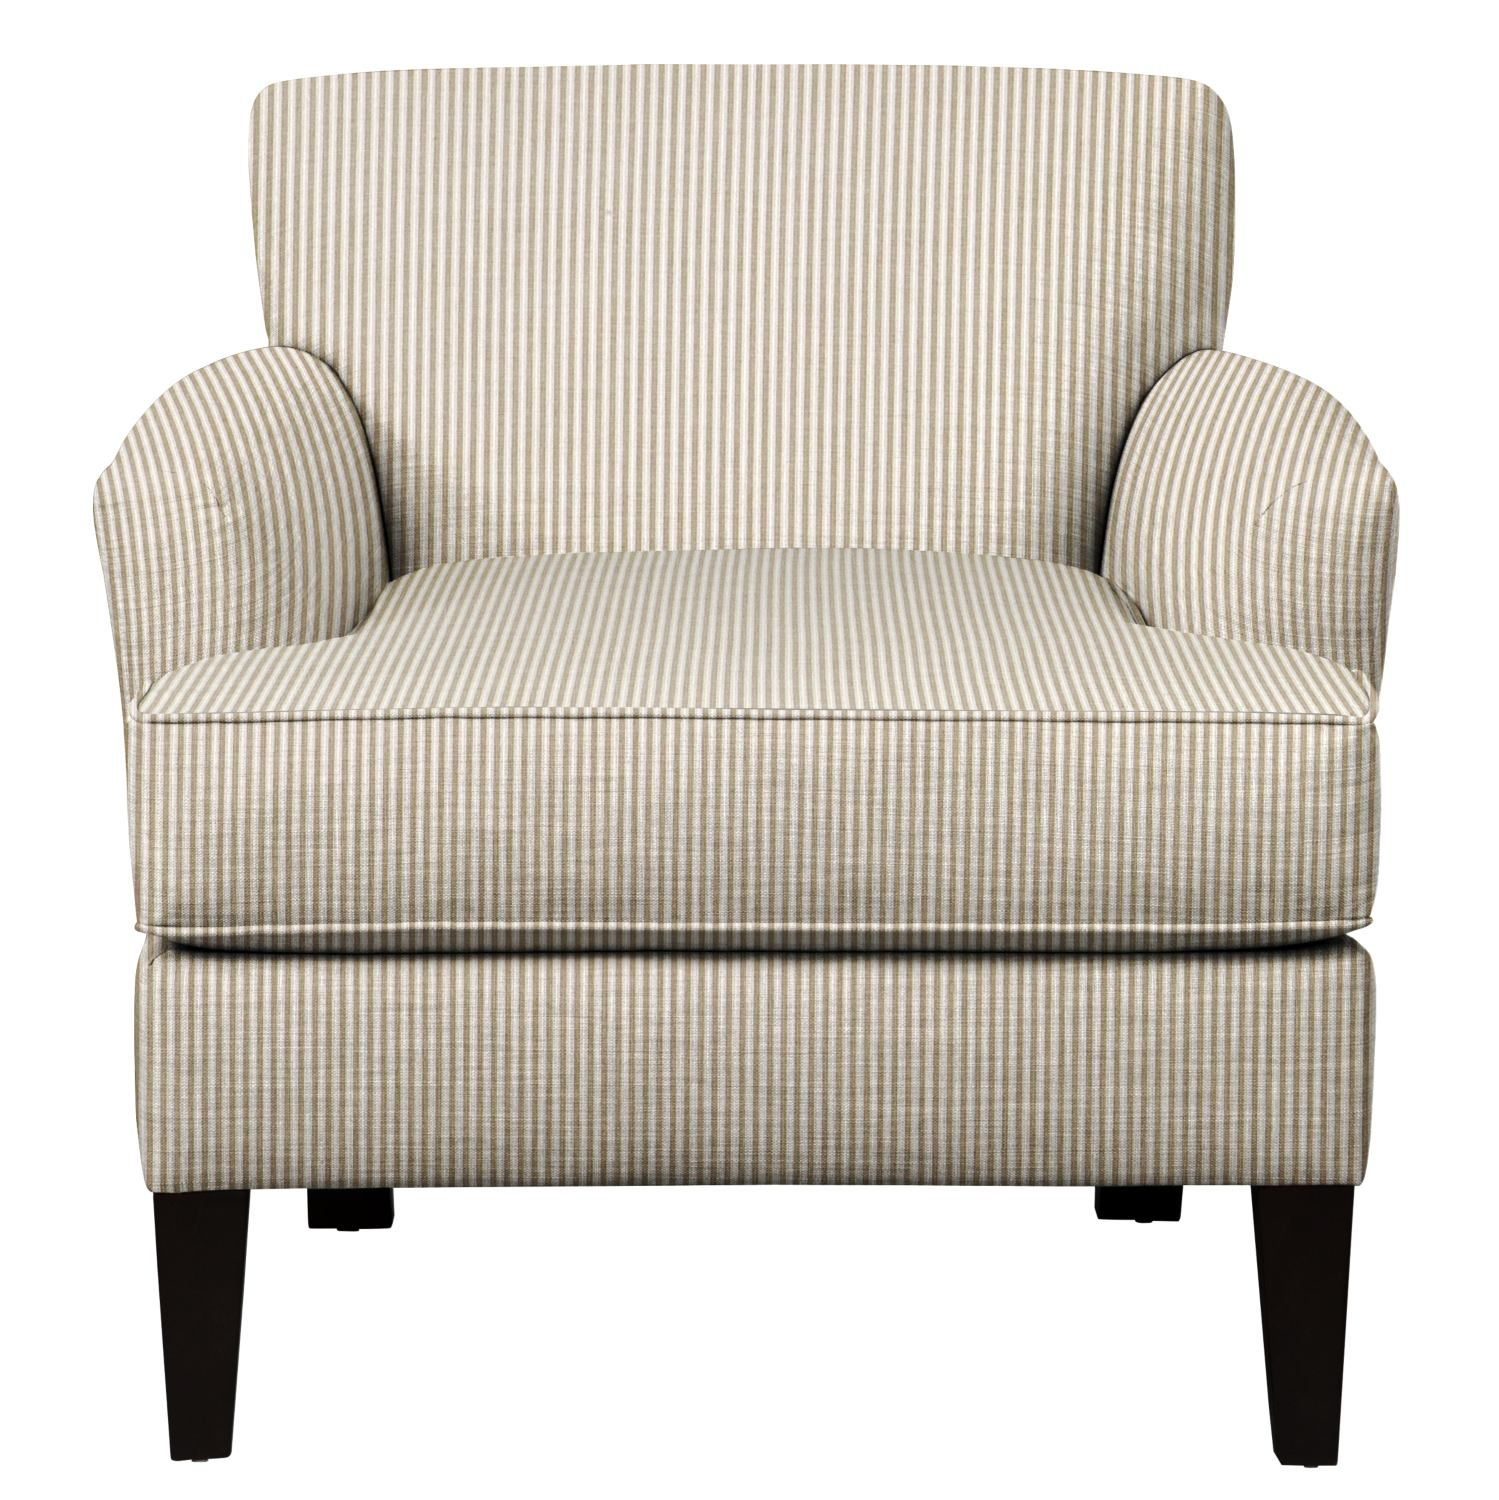 Living Room Furniture - Marcus Chair w/ Polo Linen Fabric